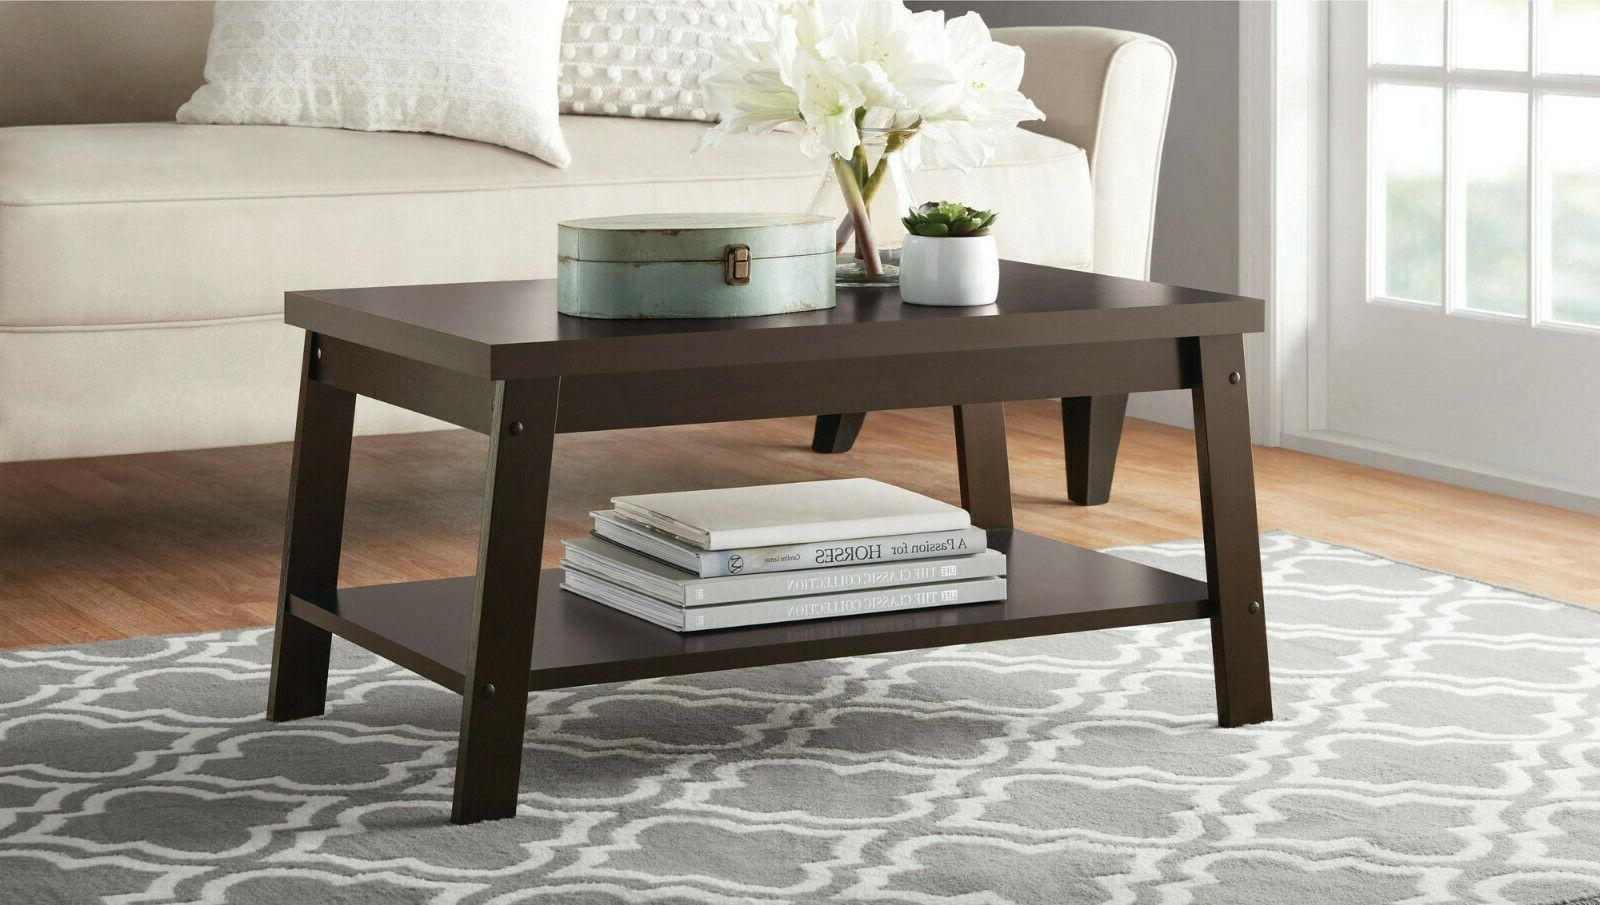 Living Room Coffee Table Storage Shelf Furniture Home Decor